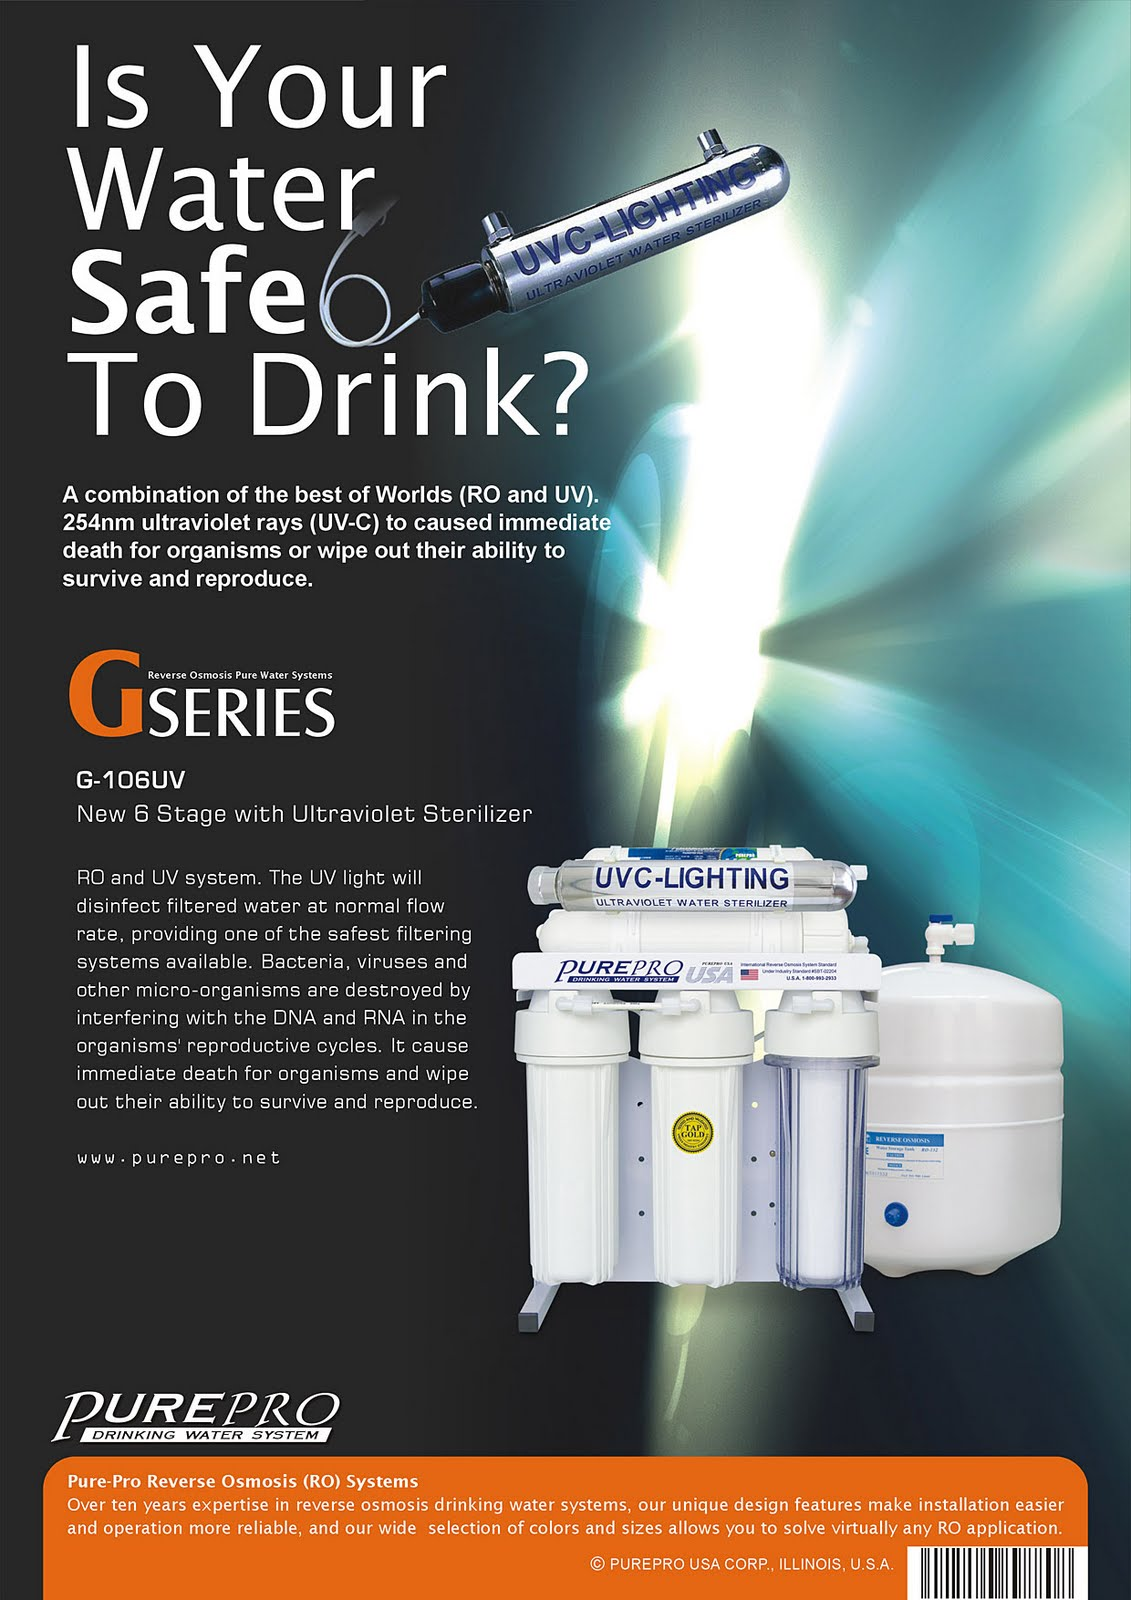 PurePro® G-106UV Reverse Osmosis Water Filtration System